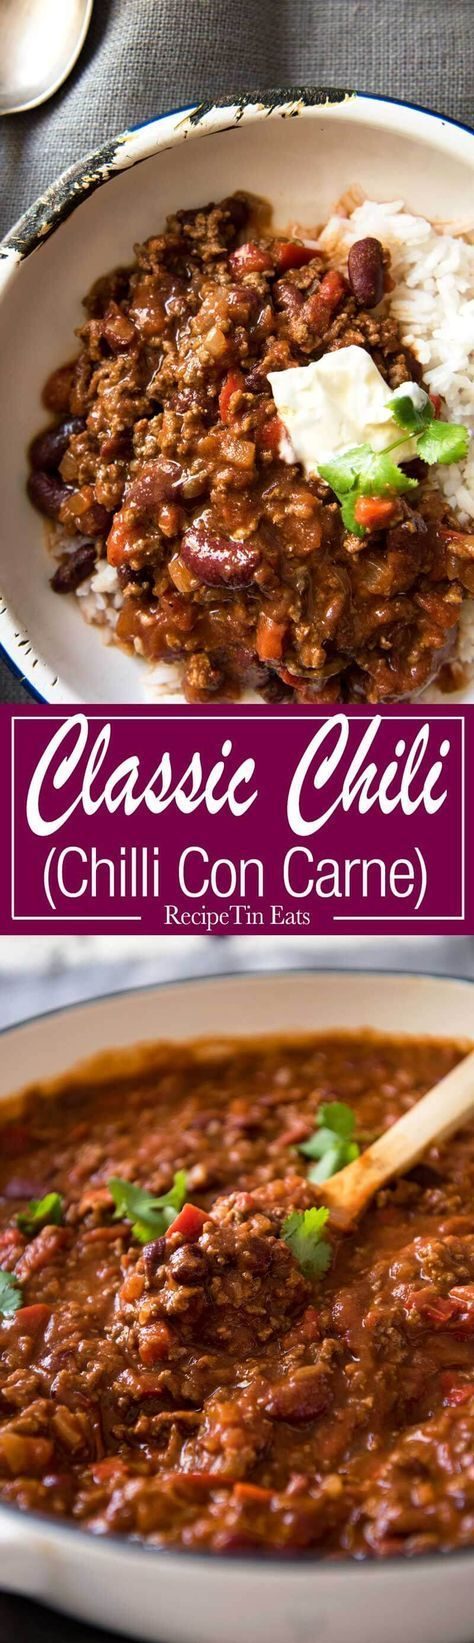 This hearty classic is made with beef in a richly spiced tomato sauce.. Even better the next day! www.recipetineats.com. Easy